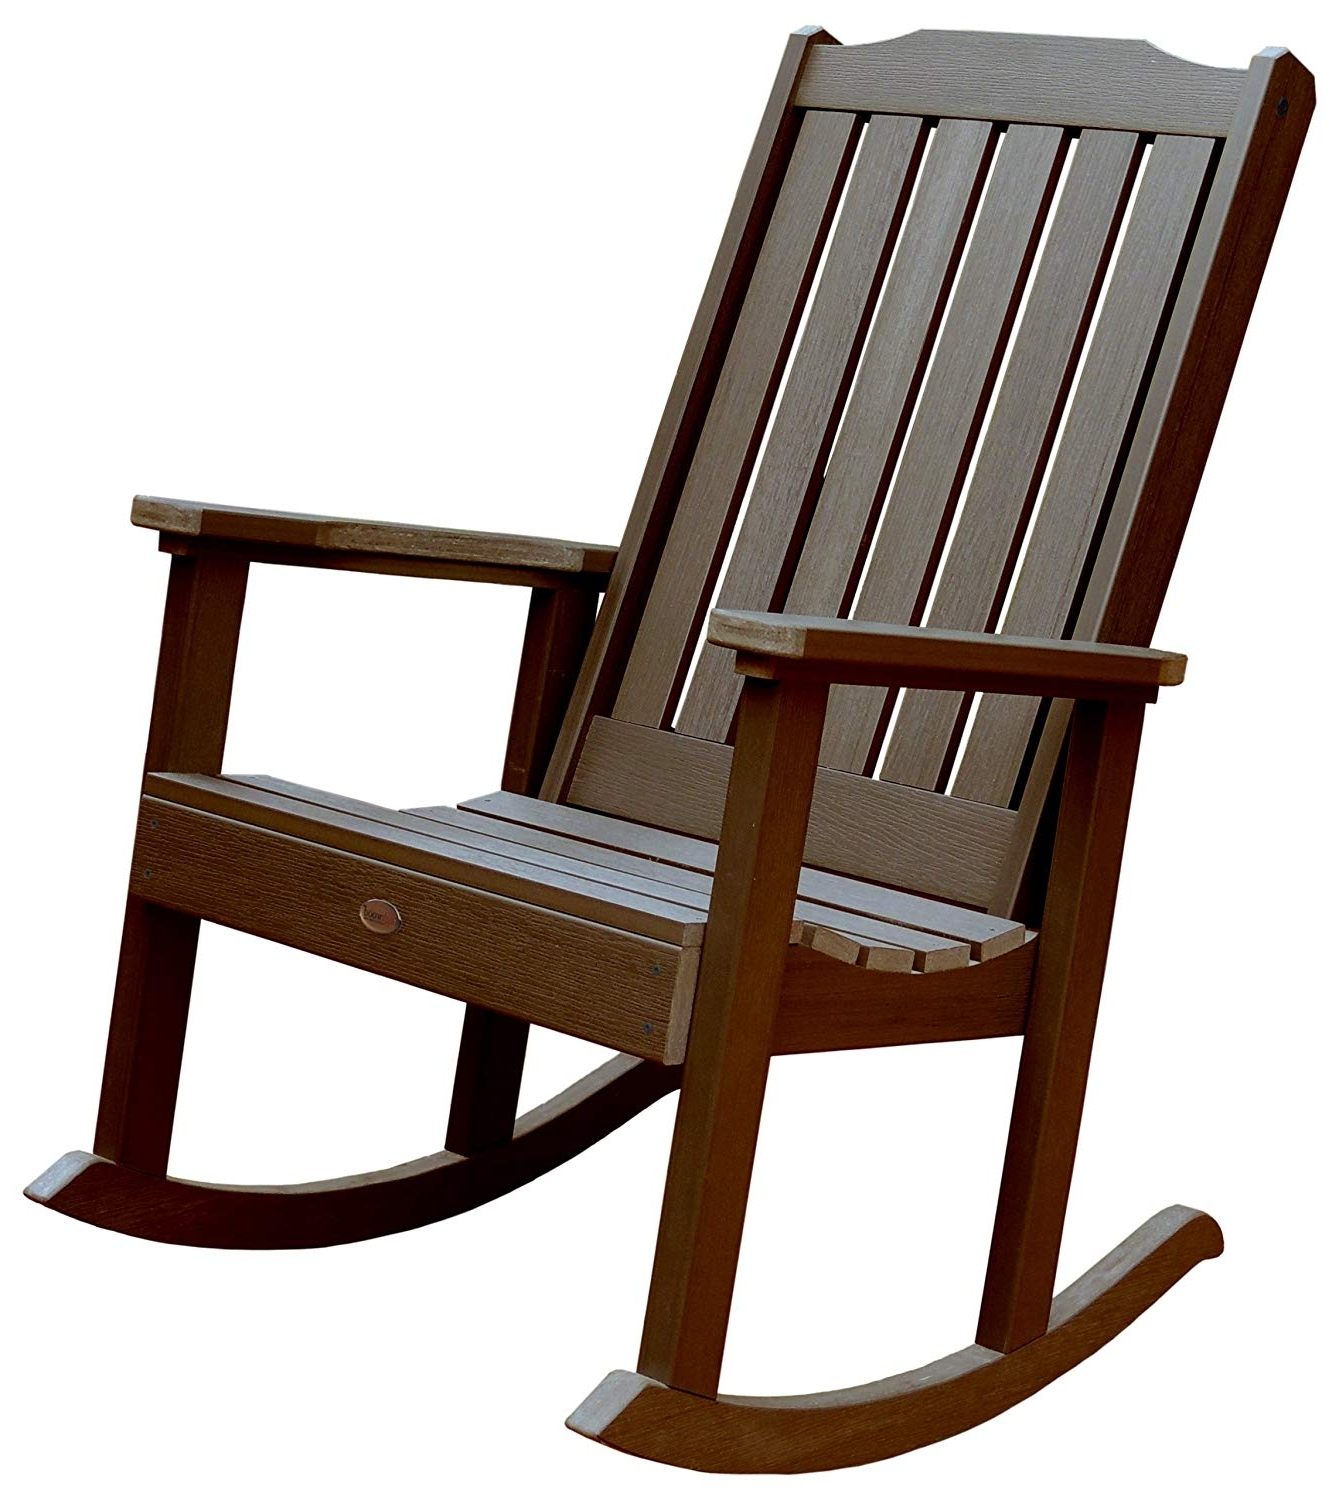 Amazon : Highwood Lehigh Rocking Chair, Weathered Acorn : Patio For Most Up To Date Plastic Patio Rocking Chairs (View 4 of 15)